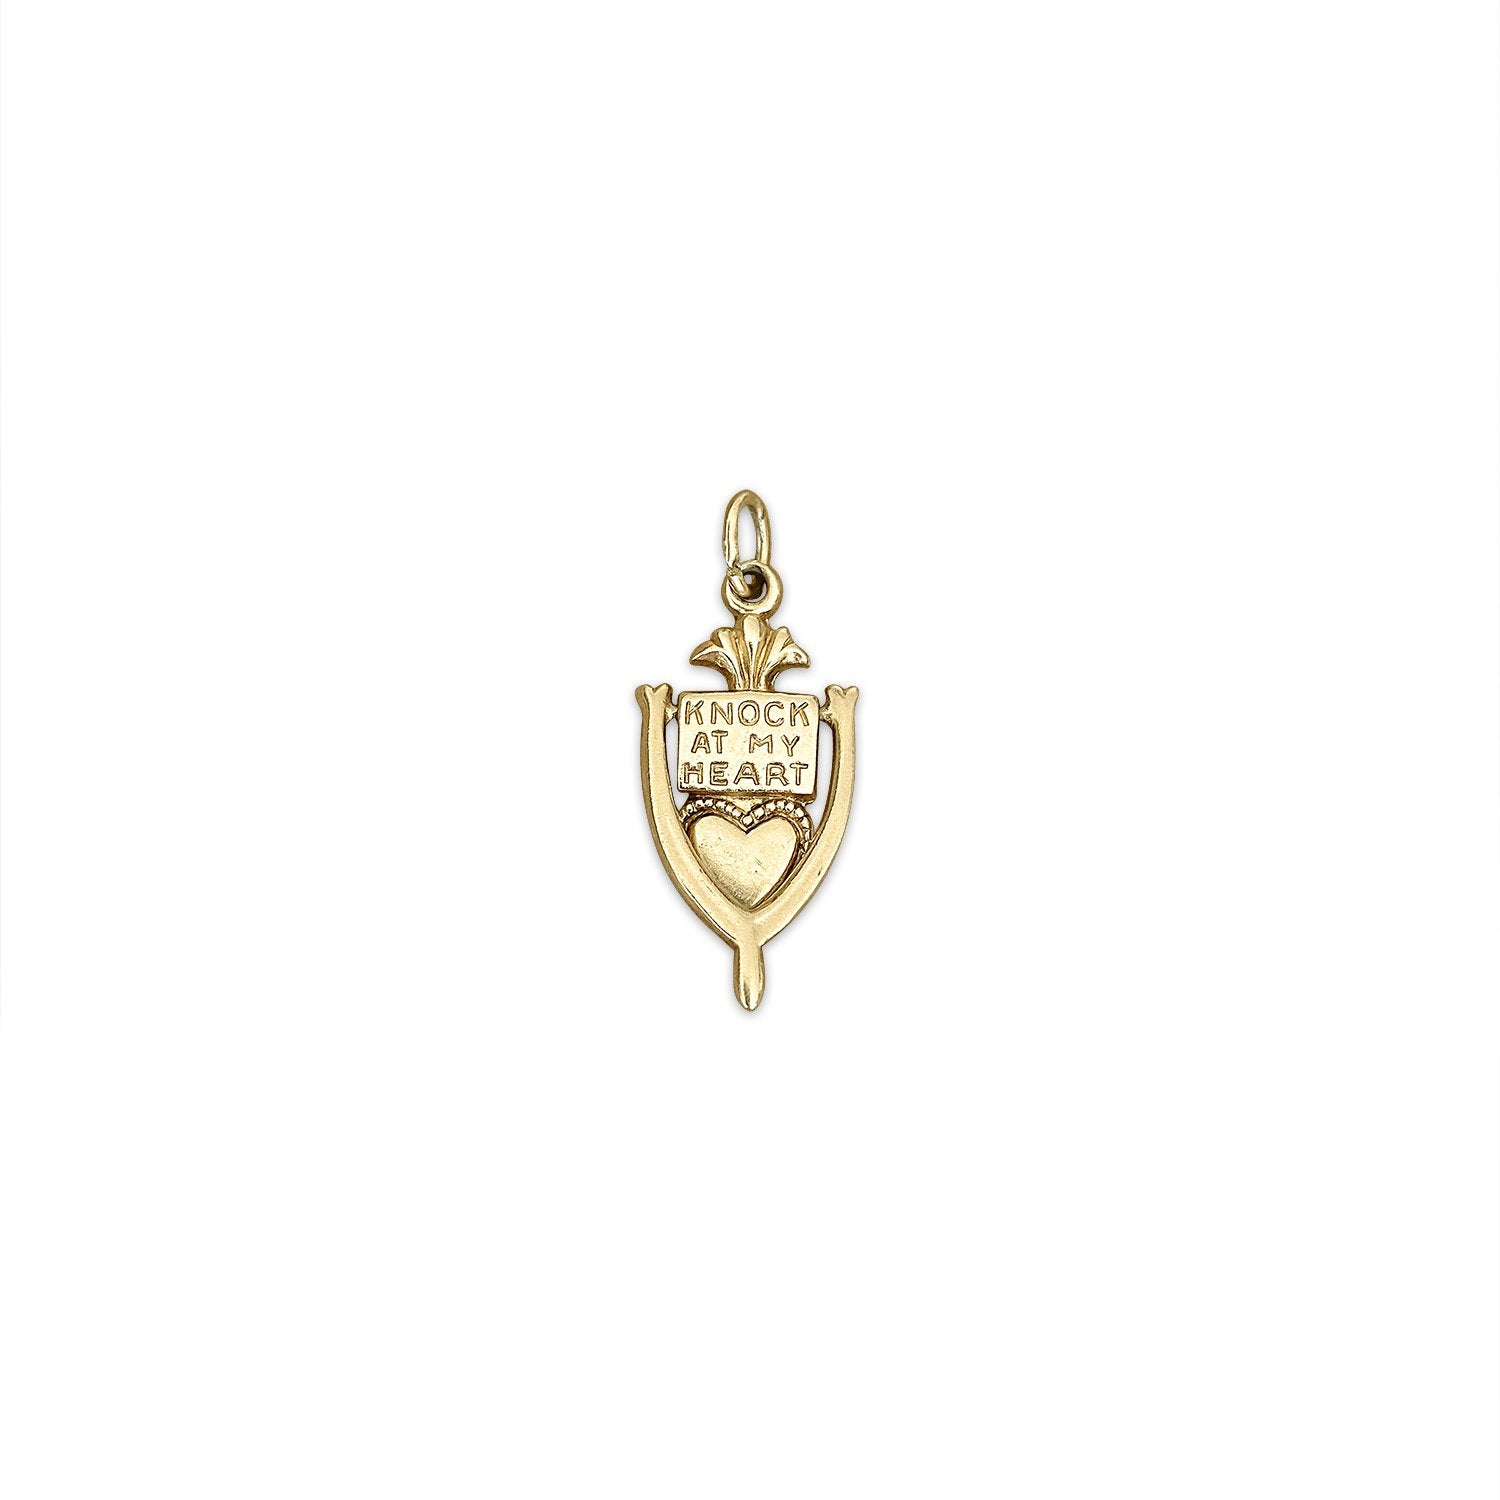 Vintage Knock on my Heart Charm by Fewer Finer